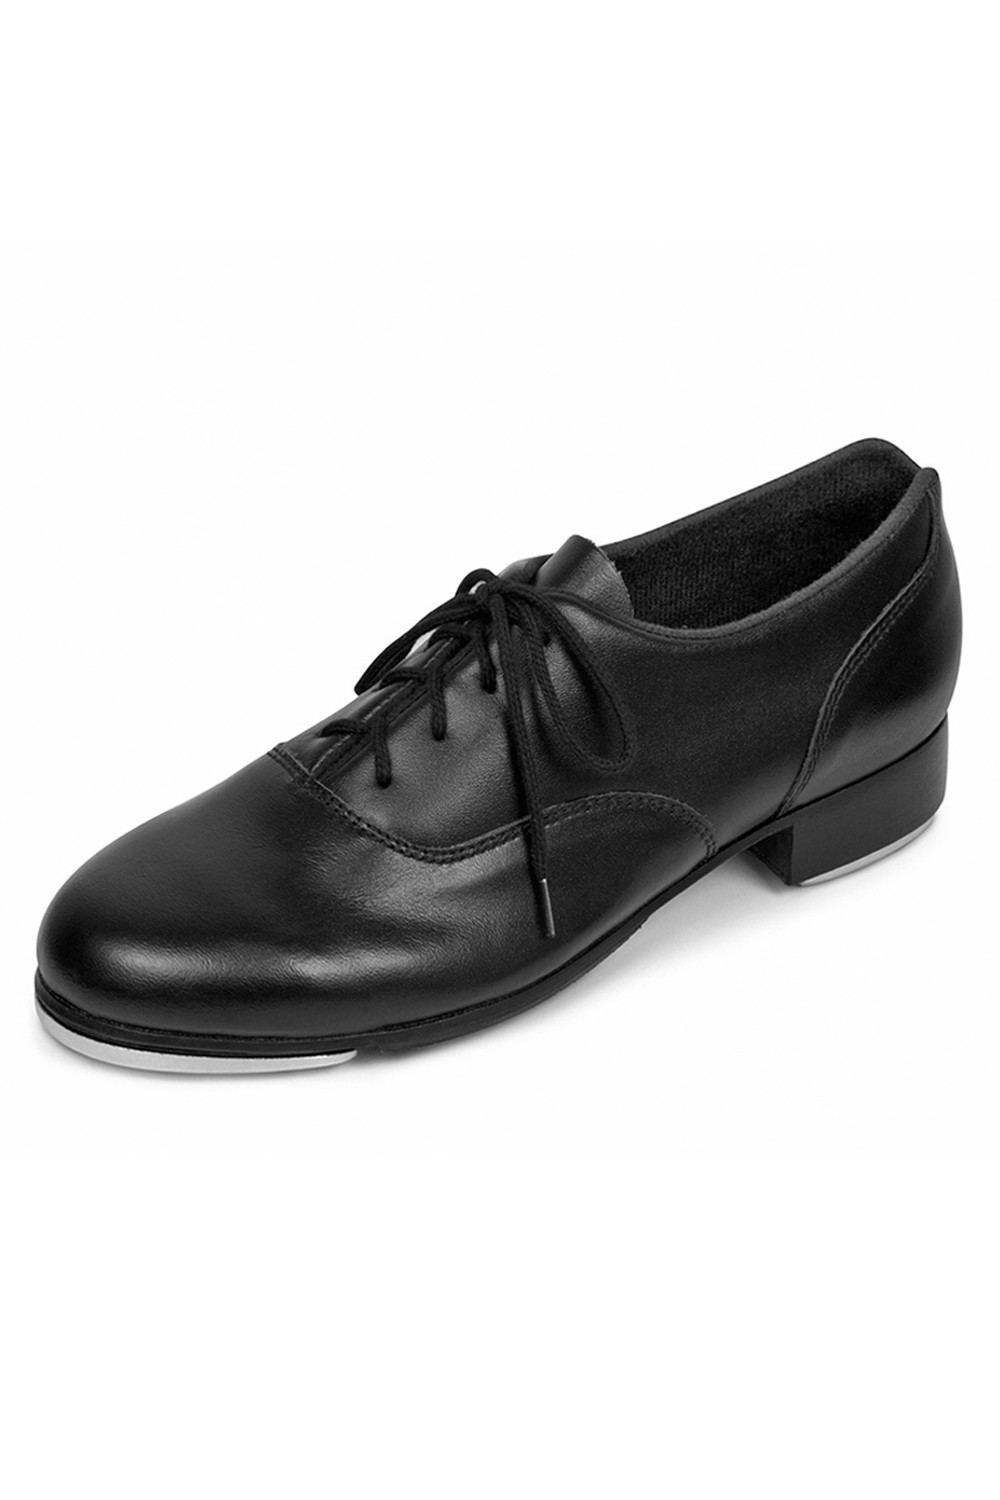 Men's Tap Shoes